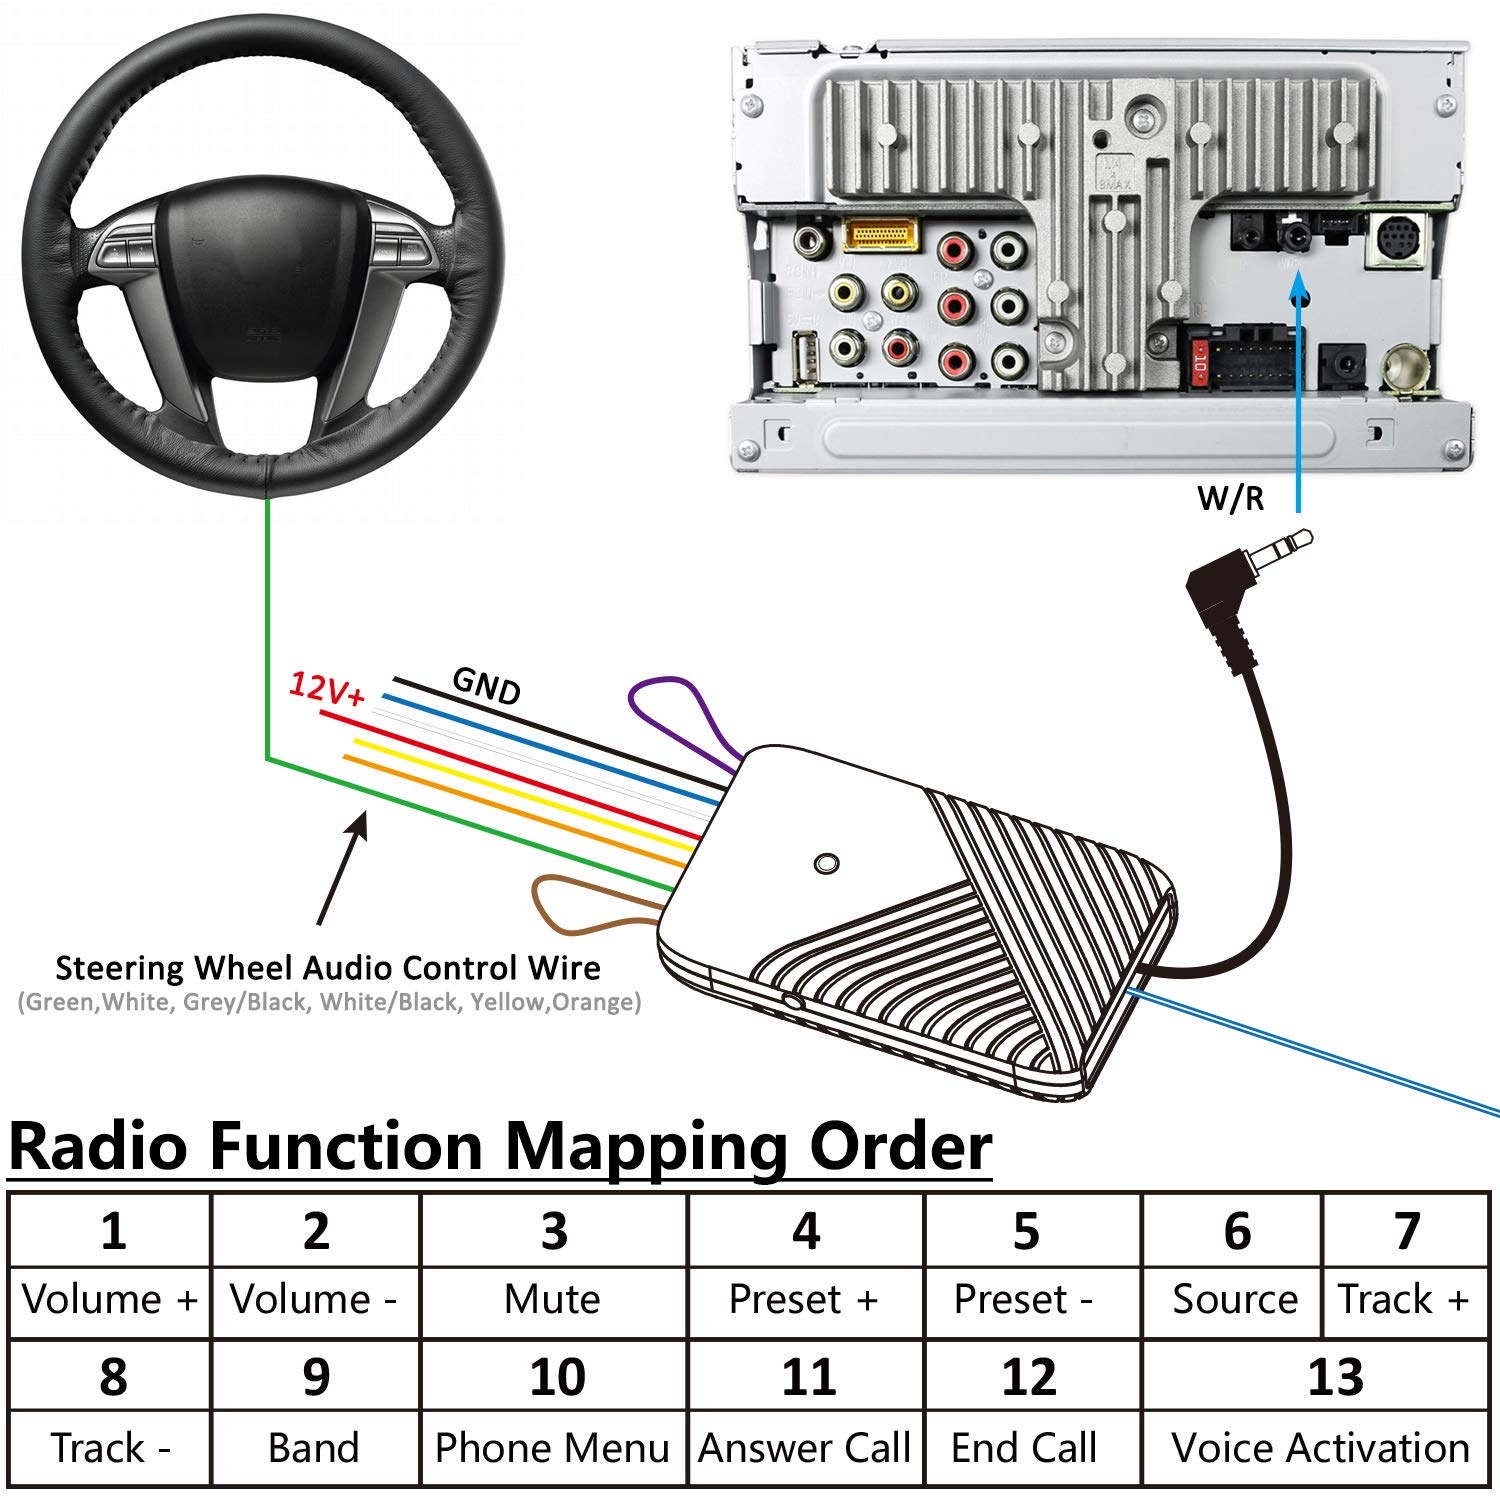 2008 Chevy Silverado Radio Wiring Diagram Together With 2004 Toyota